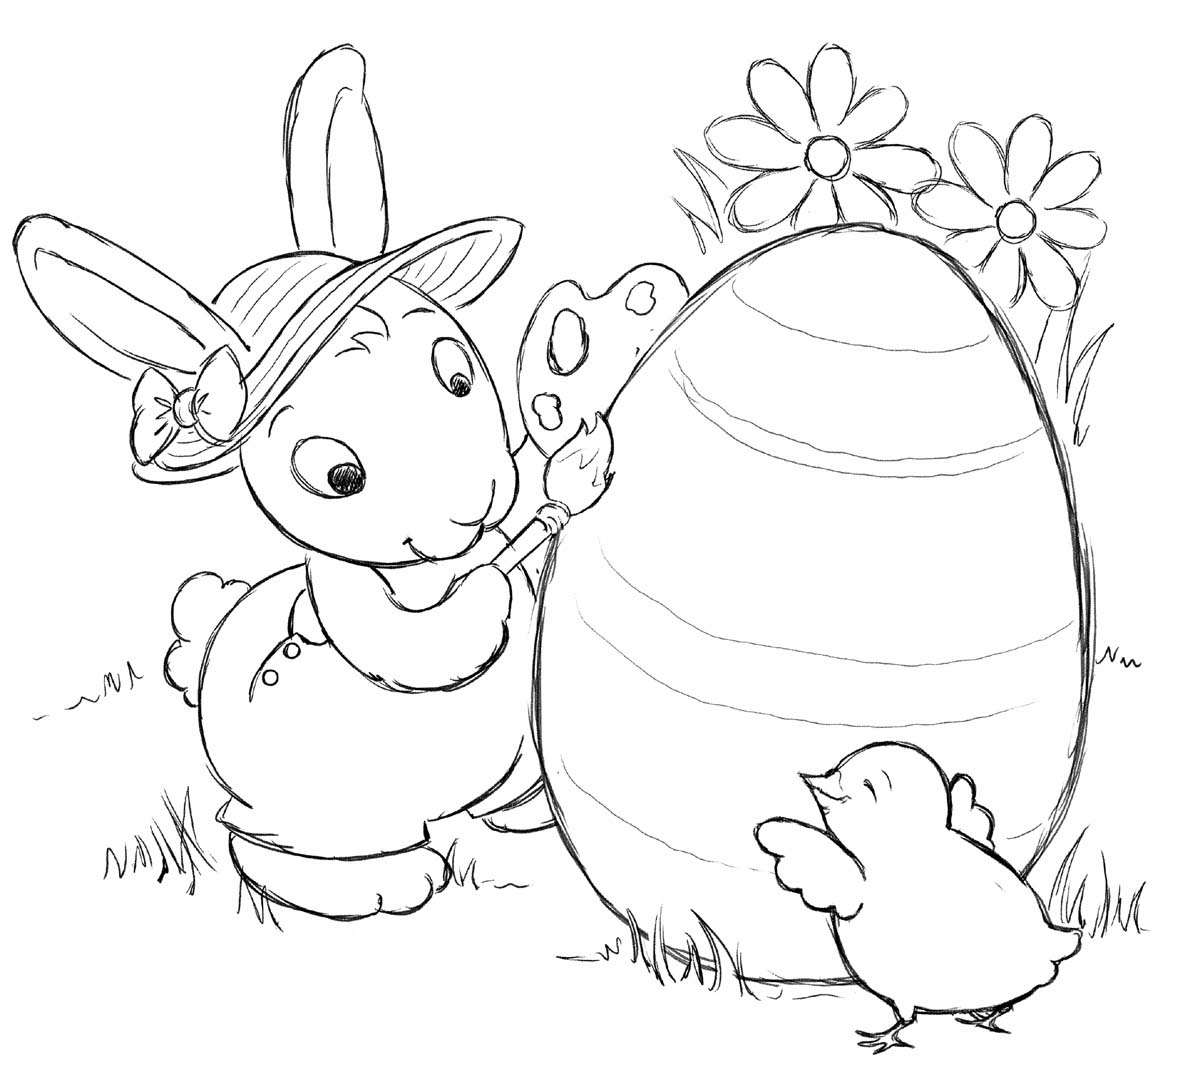 print bunny coloring pages bunny coloring pages best coloring pages for kids bunny coloring print pages